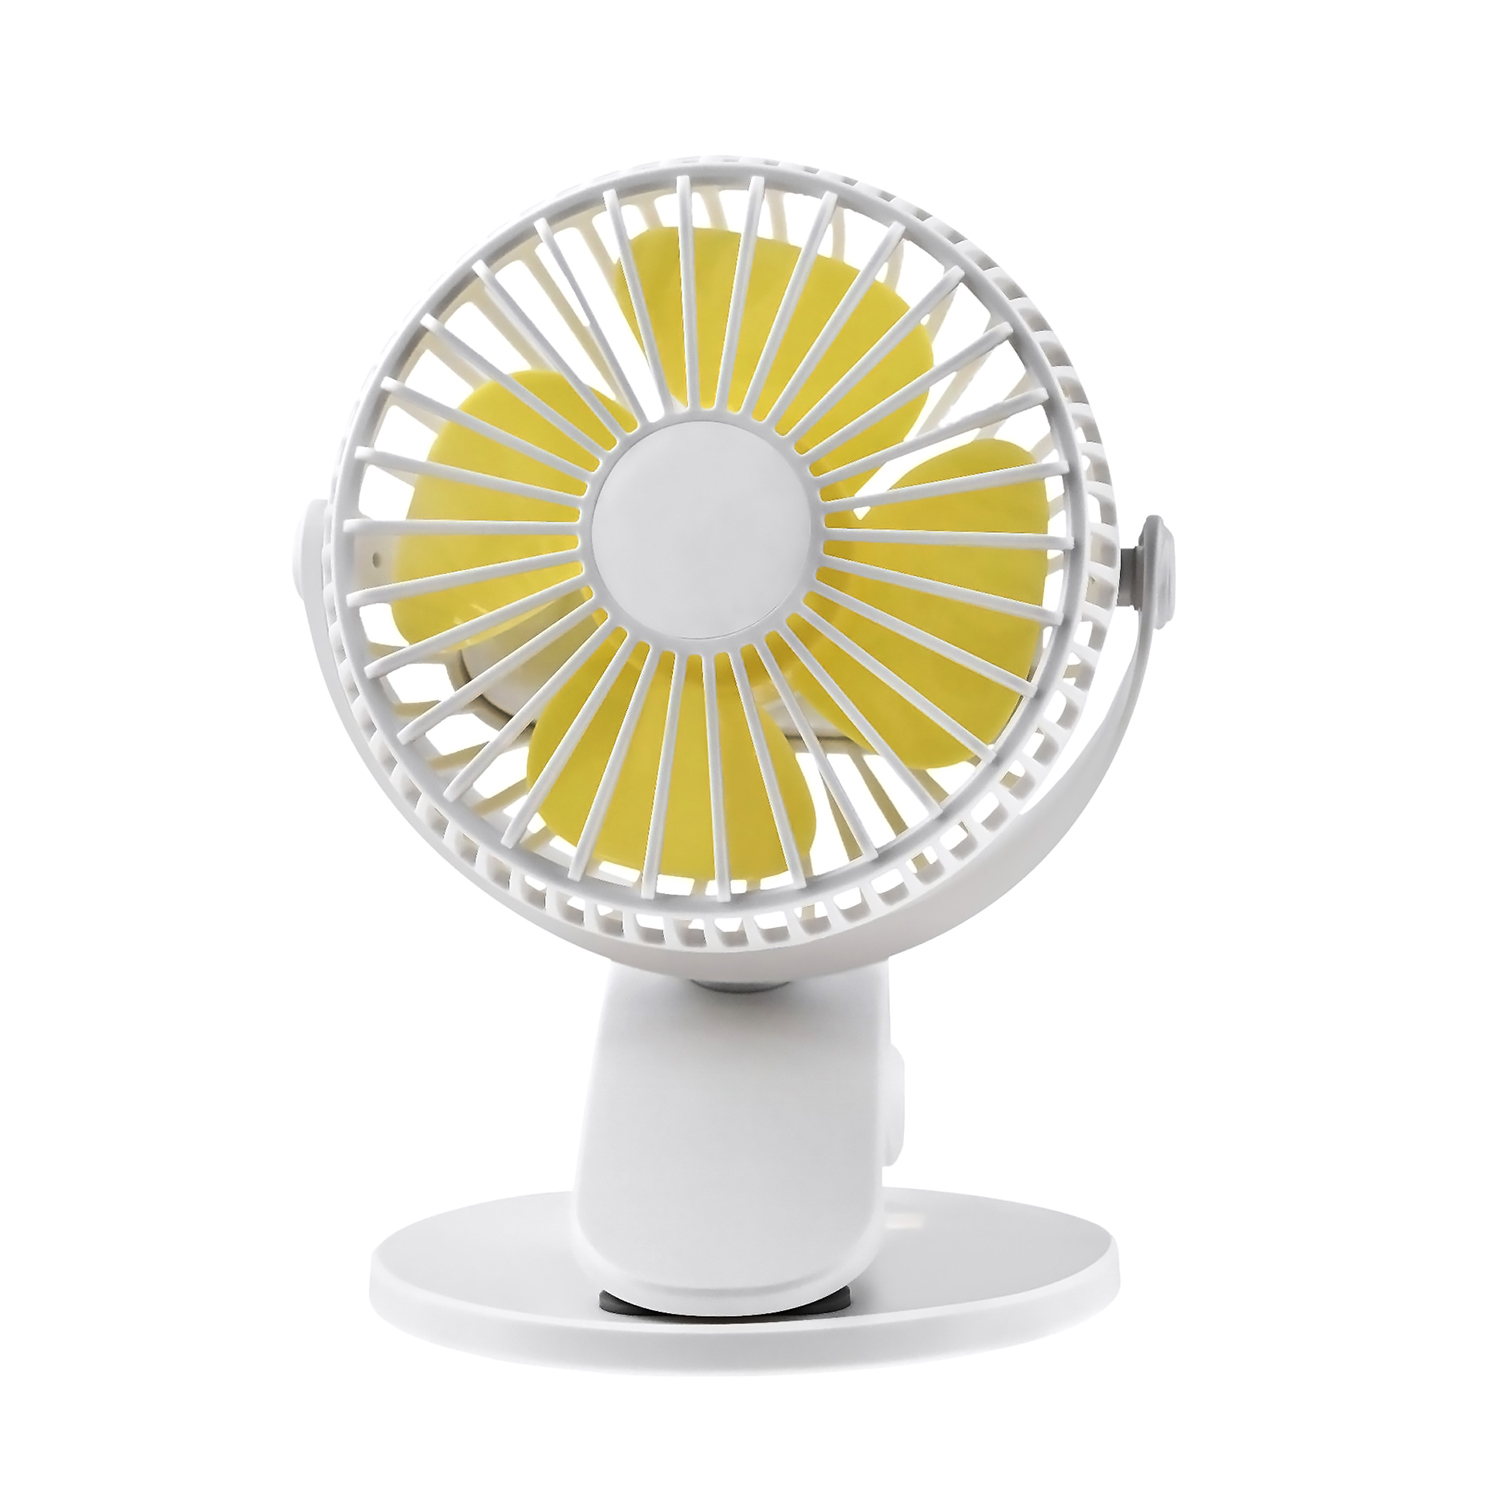 ornerx USB Desk Fan with Clip Direction Adjustable White